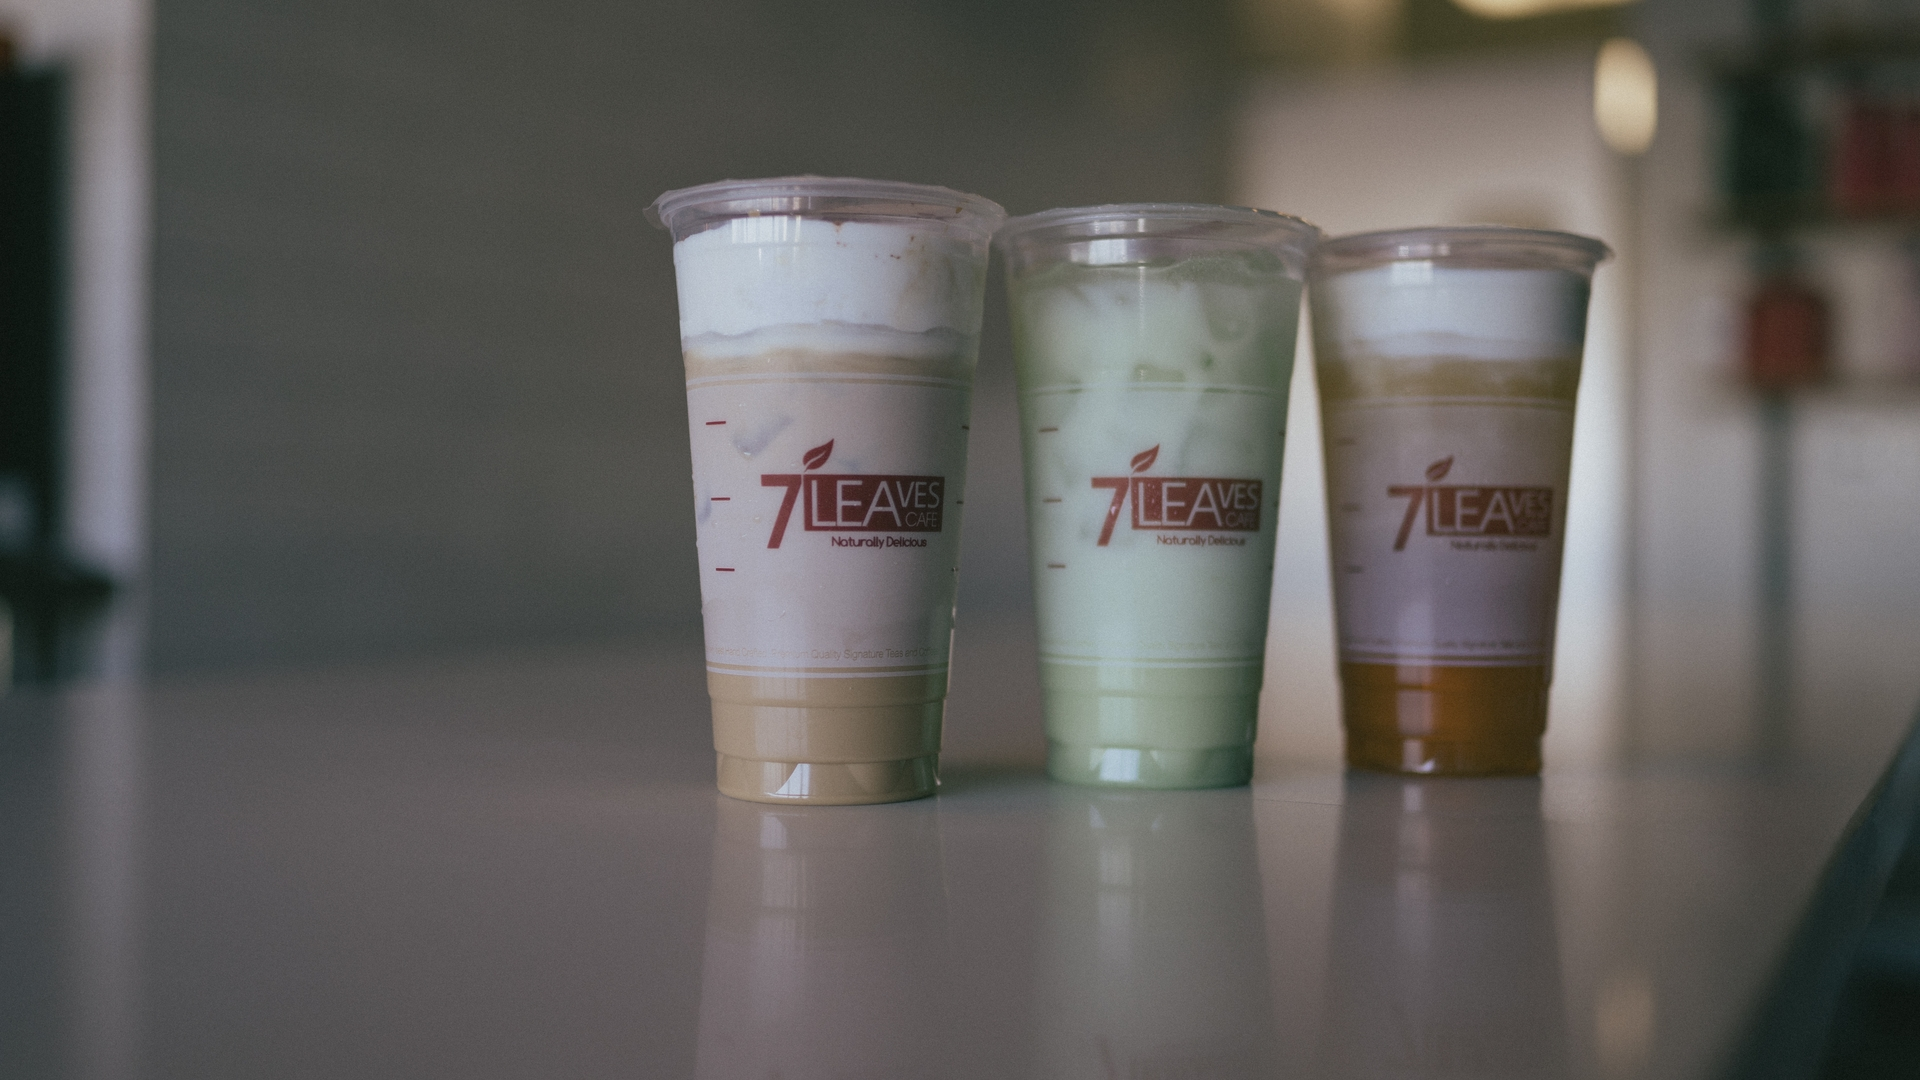 7 Leaves Cafe crafts each of its drinks from scratch, including its popular iced coffee and milk teas.